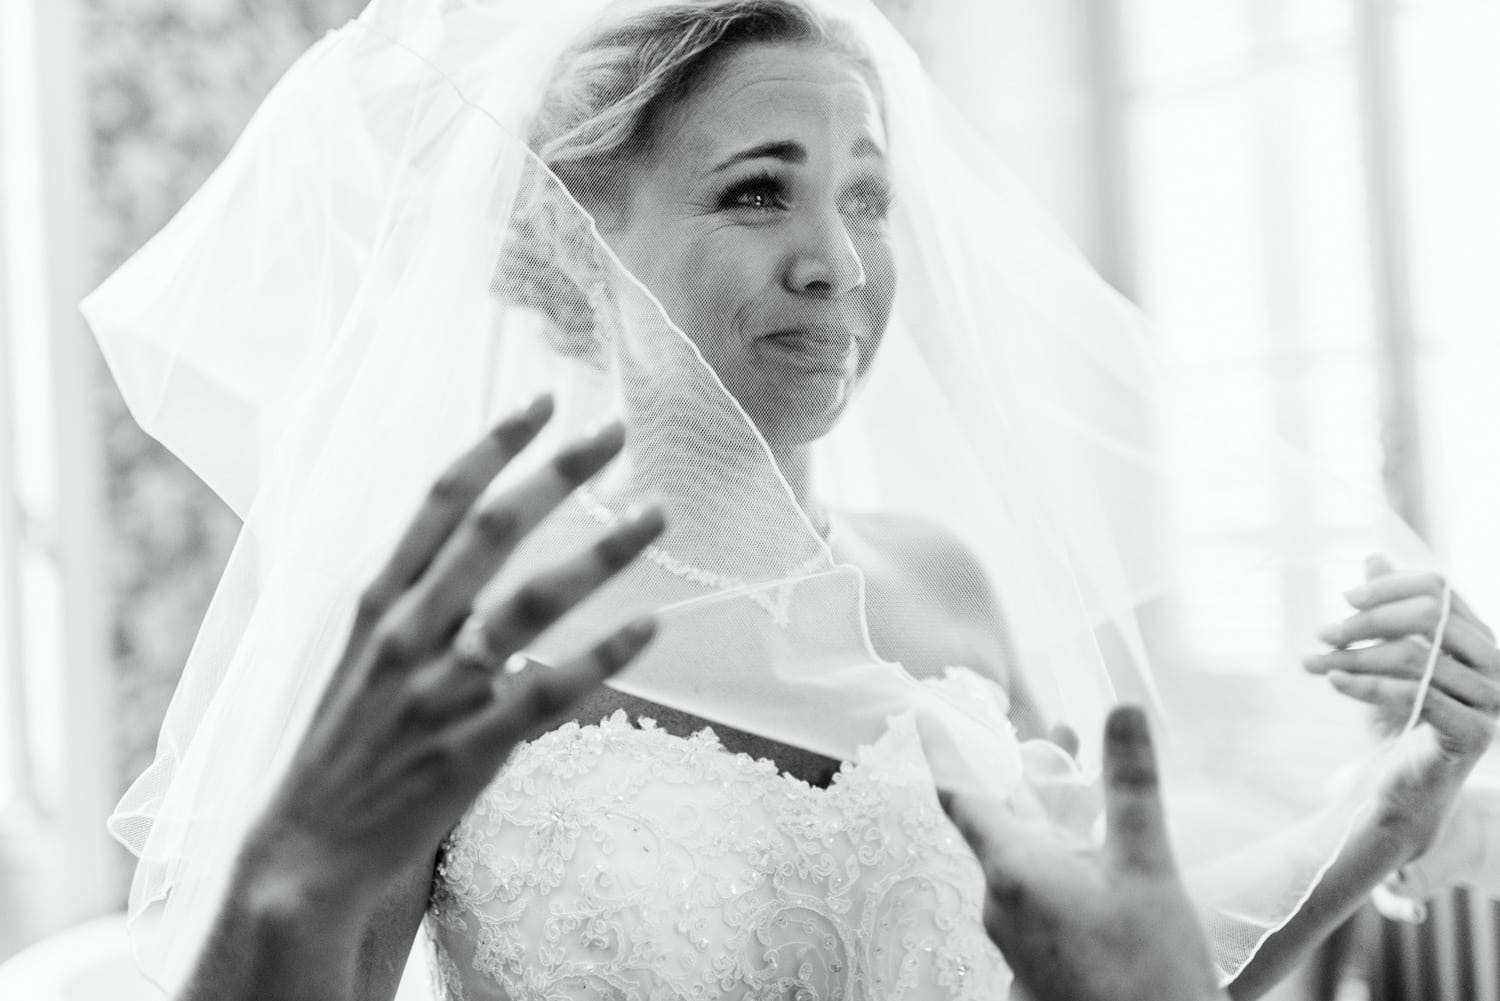 emotional bride under veil